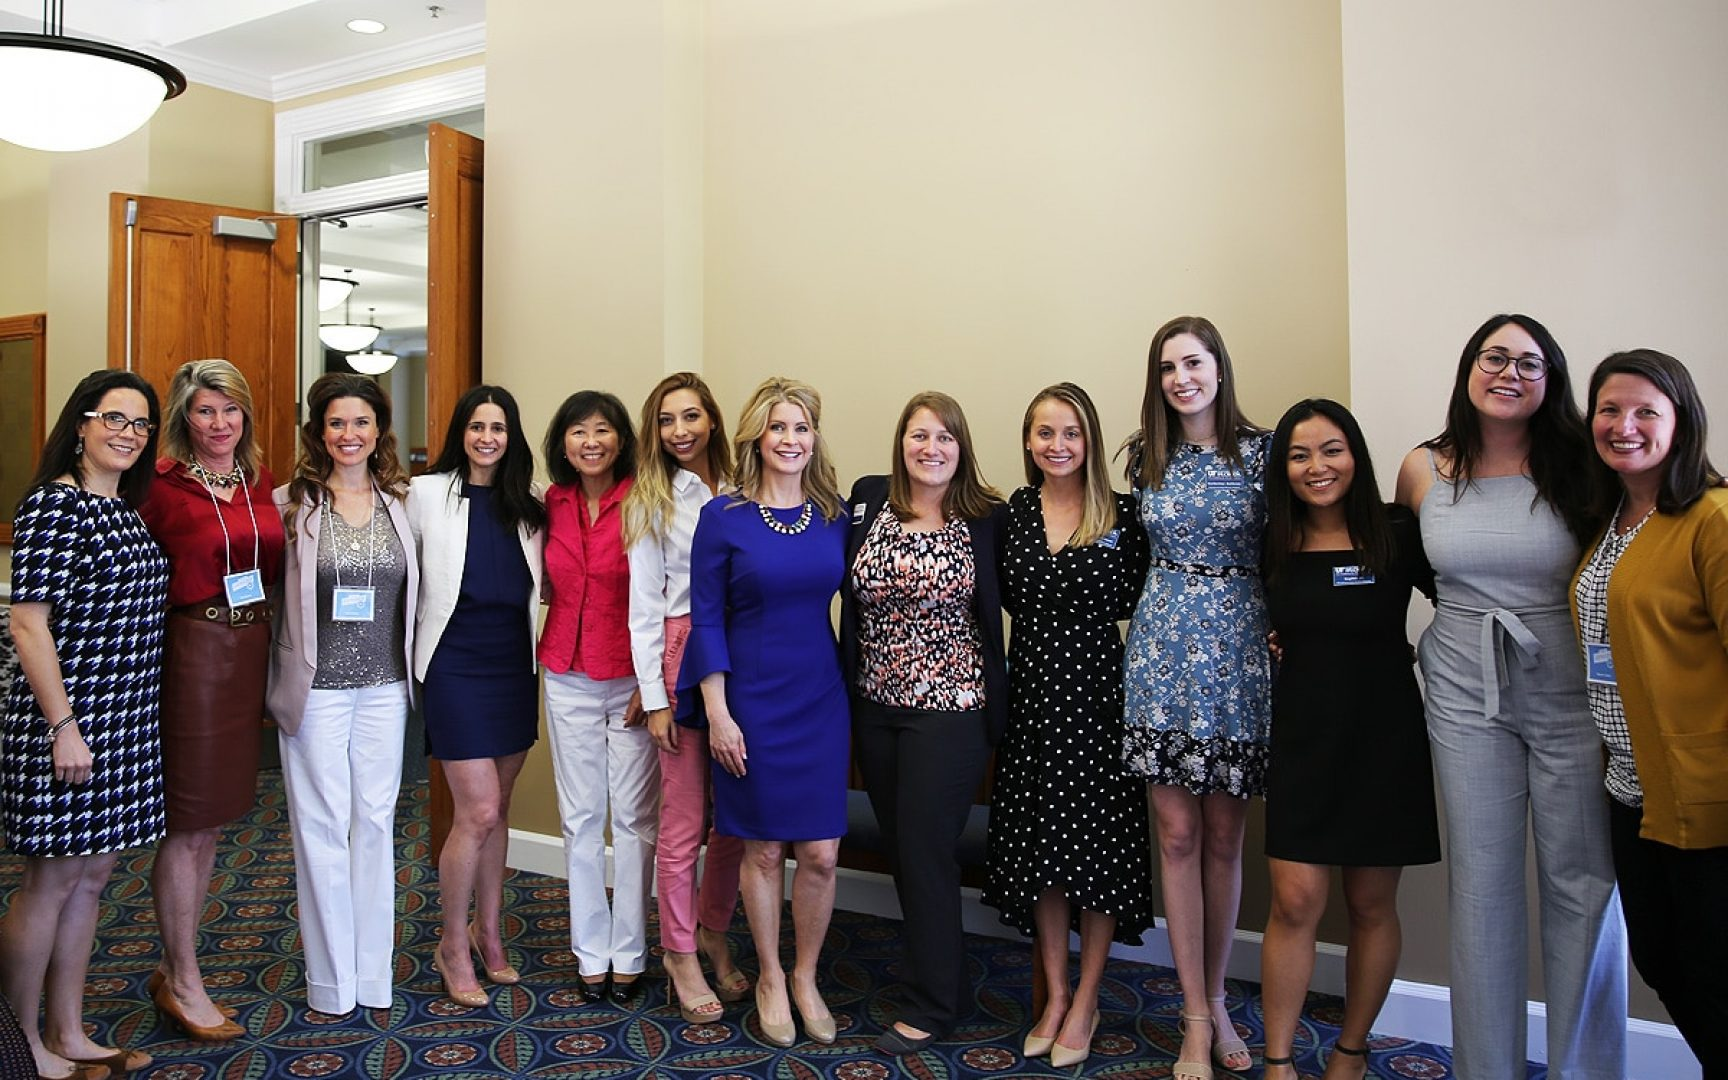 A group of women pose for a photo at the Women's Entrepreneurship Symposium